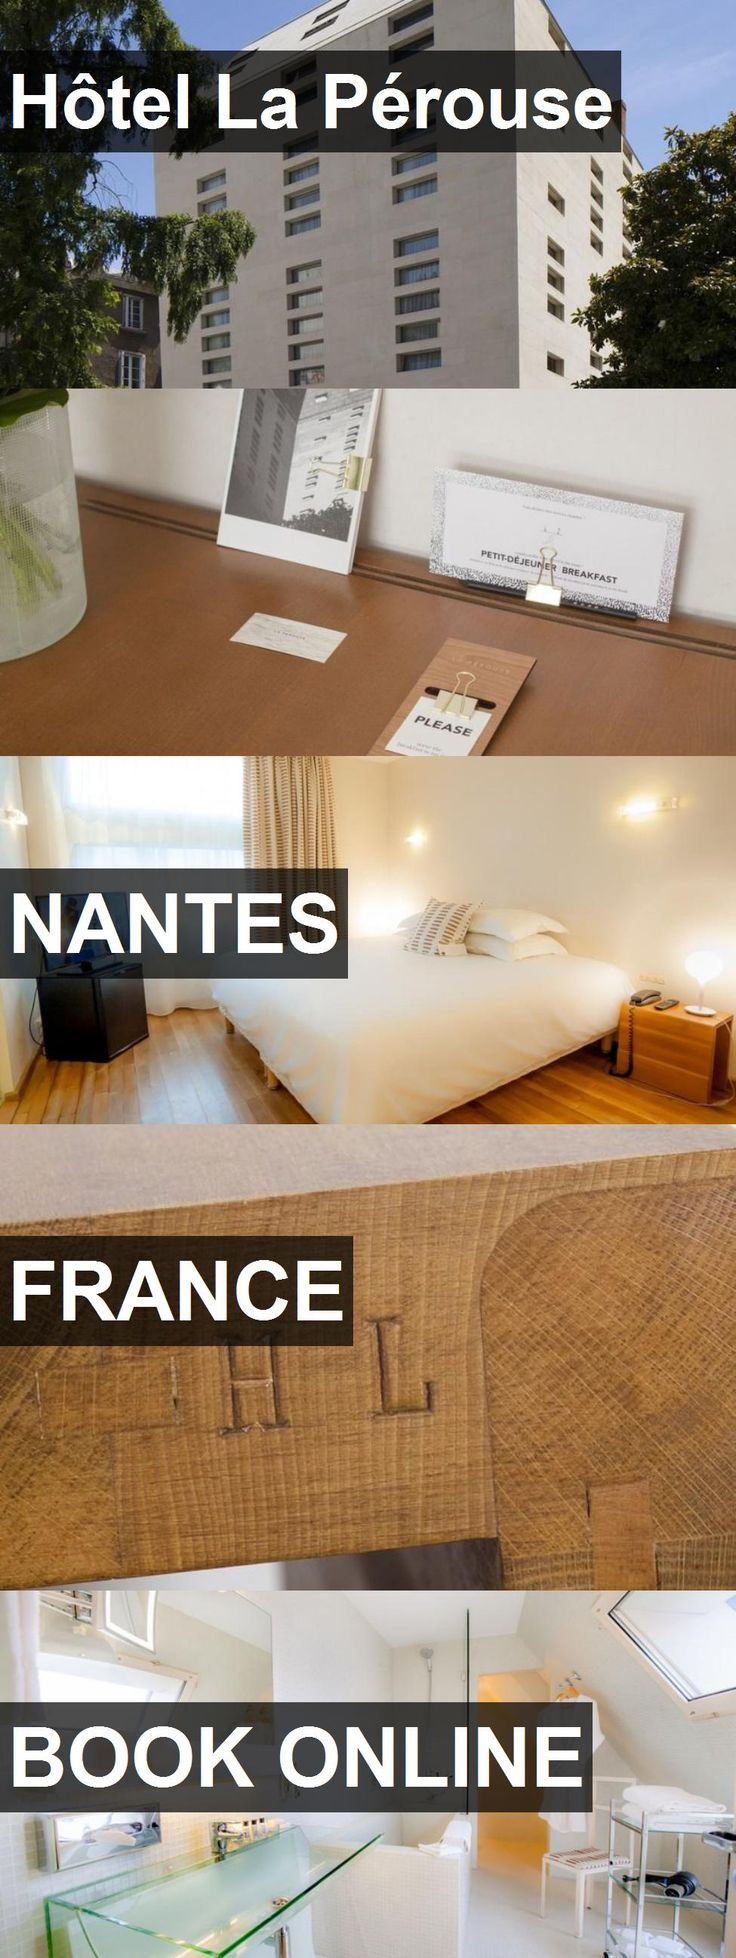 Hotel Hôtel La Pérouse in Nantes, France. For more information, photos, reviews and best prices please follow the link. #France #Nantes #travel #vacation #hotel